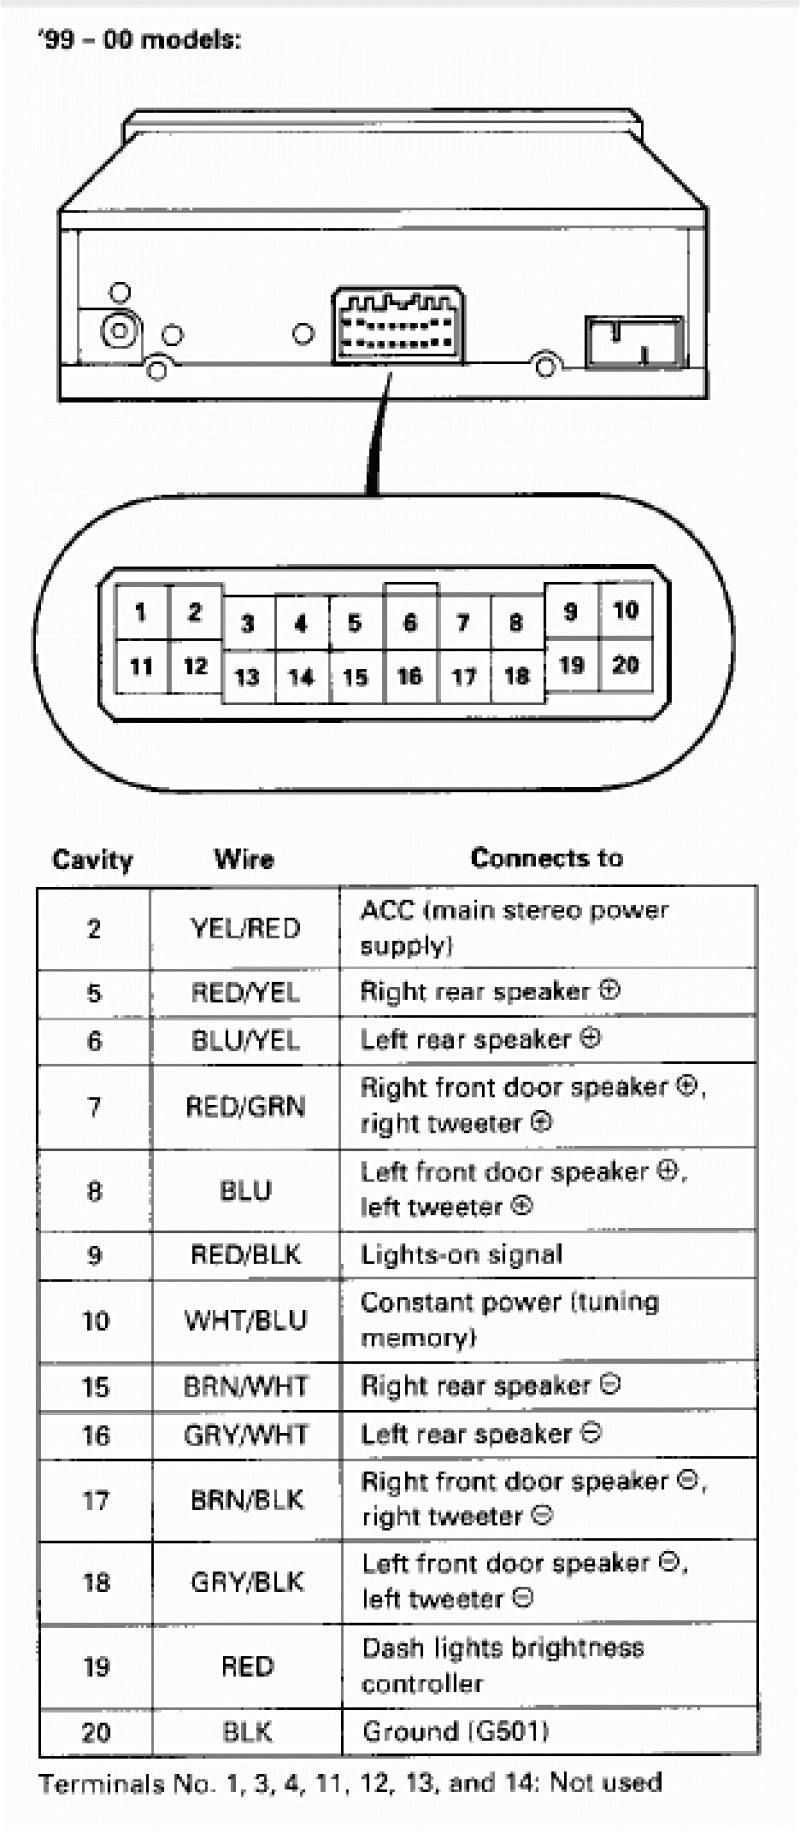 2001 honda accord stereo wiring diagram | wiring diagrams fate get  wiring diagram library